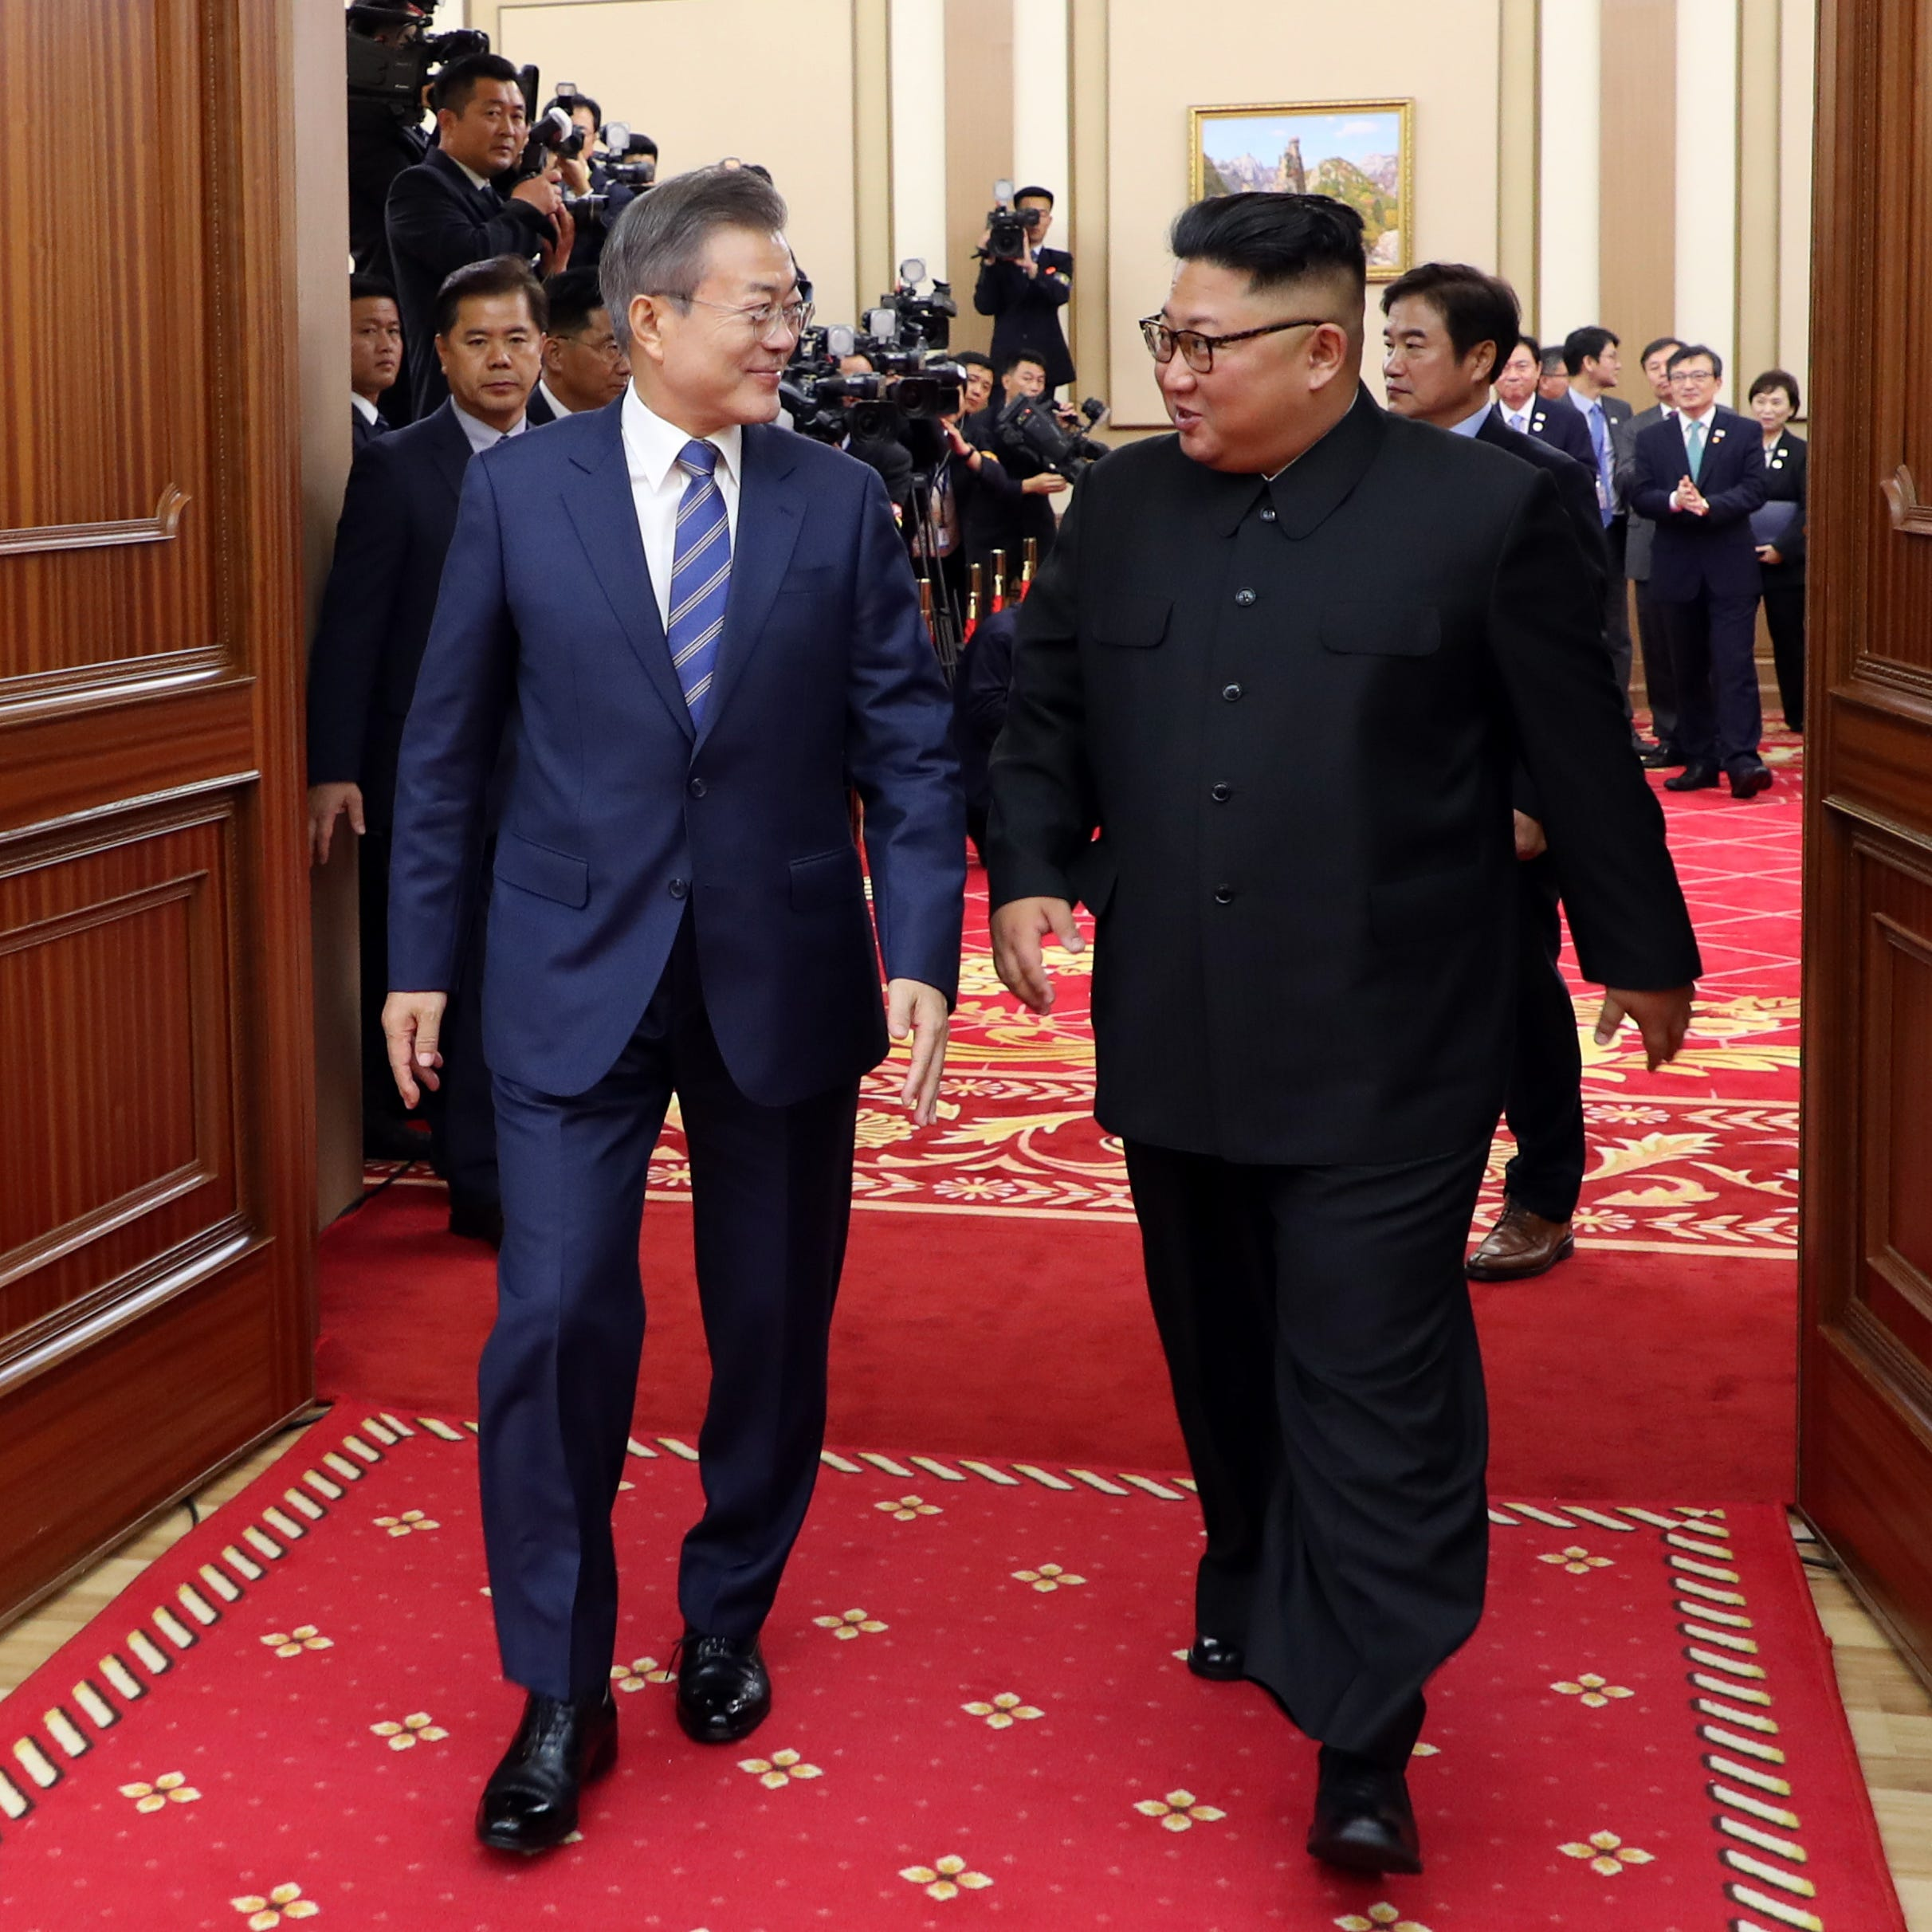 Why Donald Trump needs to be involved in North and South Korea peace talks: Today's talker